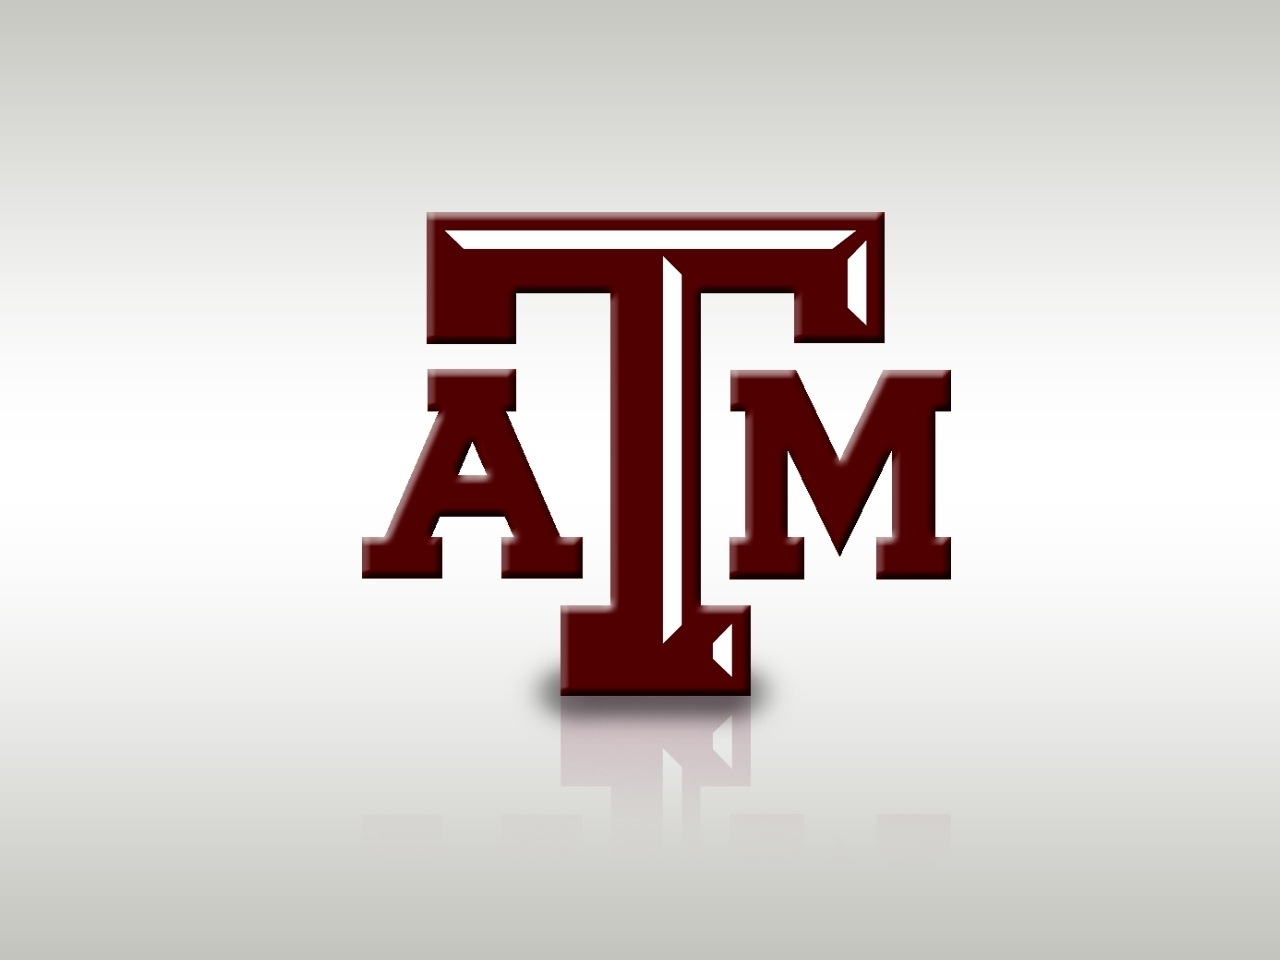 texas a&m desktop wallpaper - texas a&m aggies | texas a&m themes